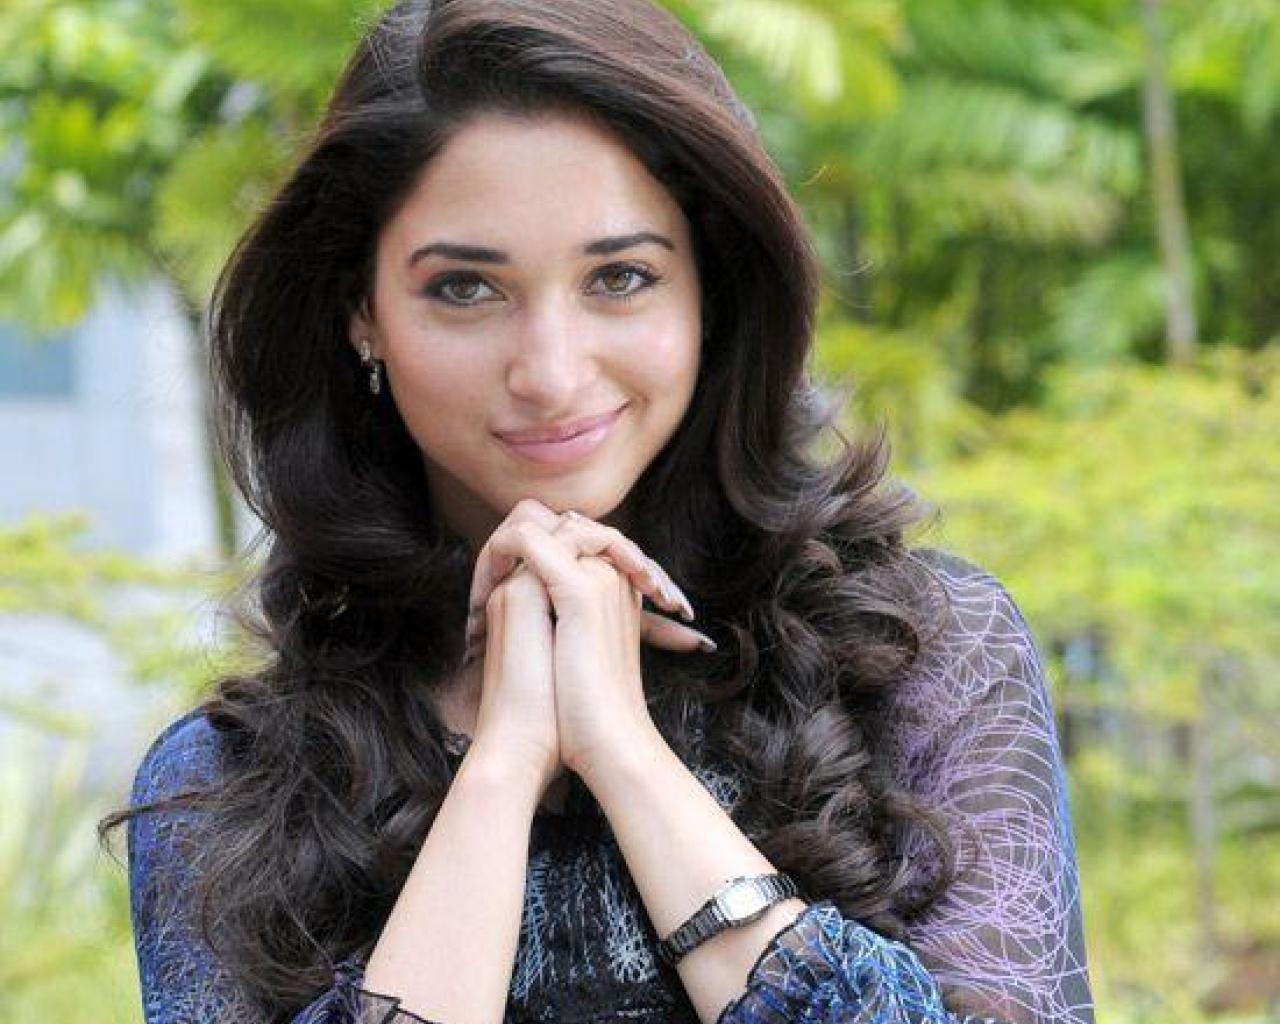 Tamanna Bhatia Wallpapers HD Wallpaper  1280x1024